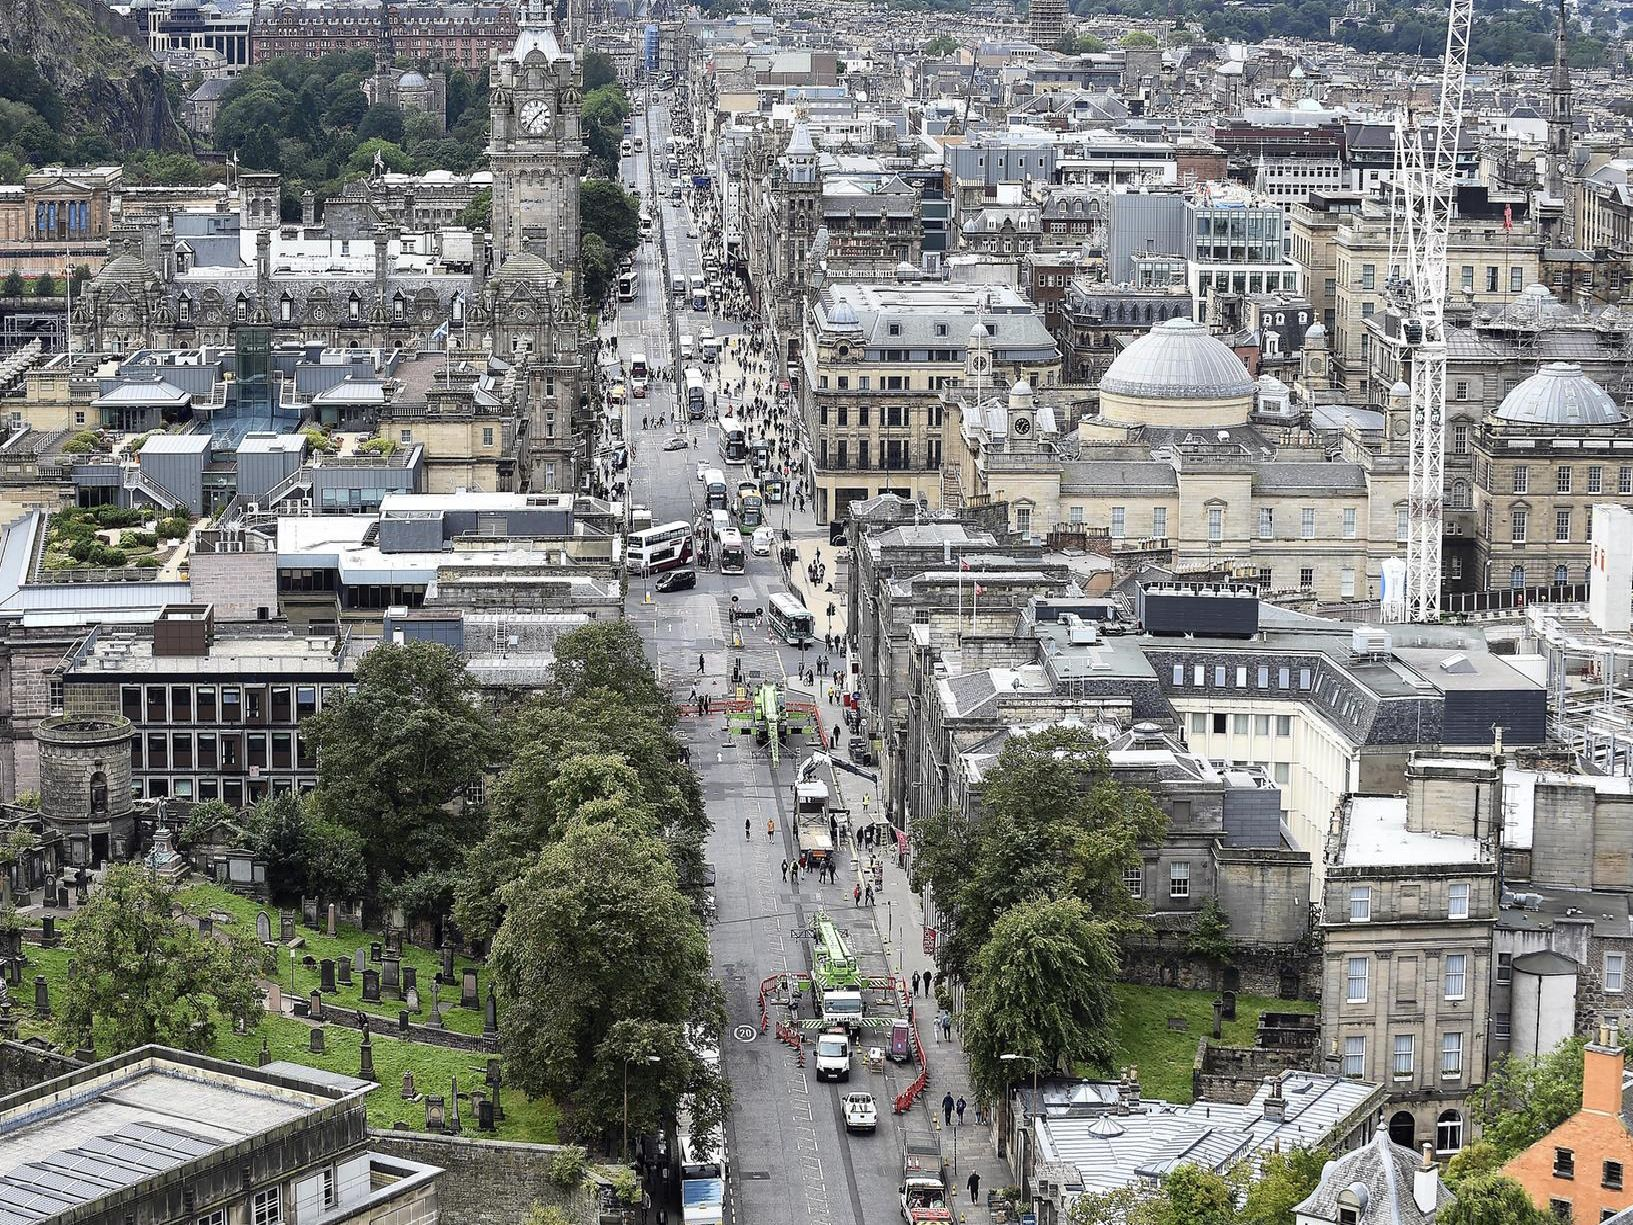 A photo of the streets below taken from Calton Hill